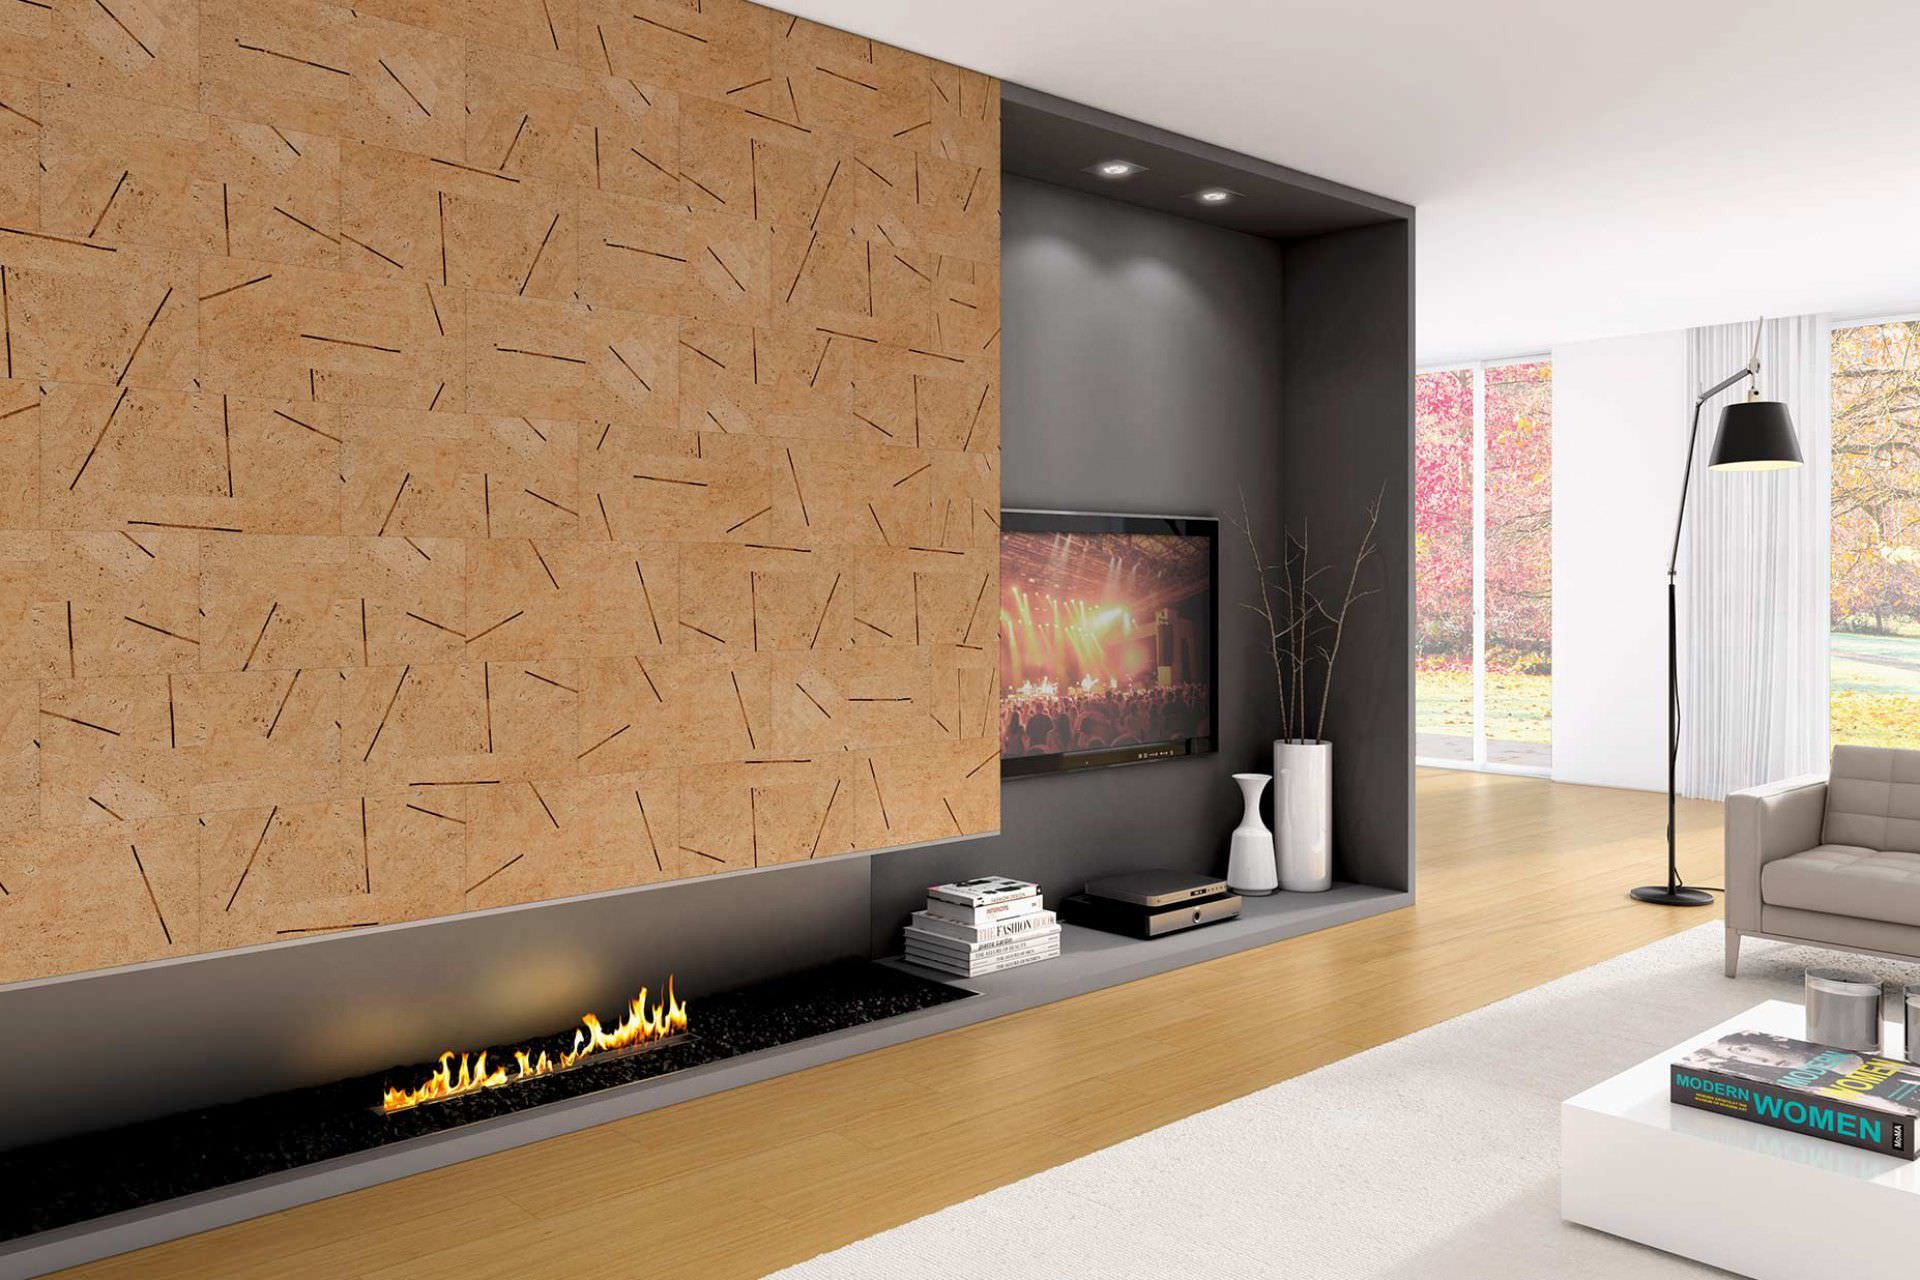 Decorated with cork wallpaper at the hi-tech design with artificial firestone and recessed module with TV